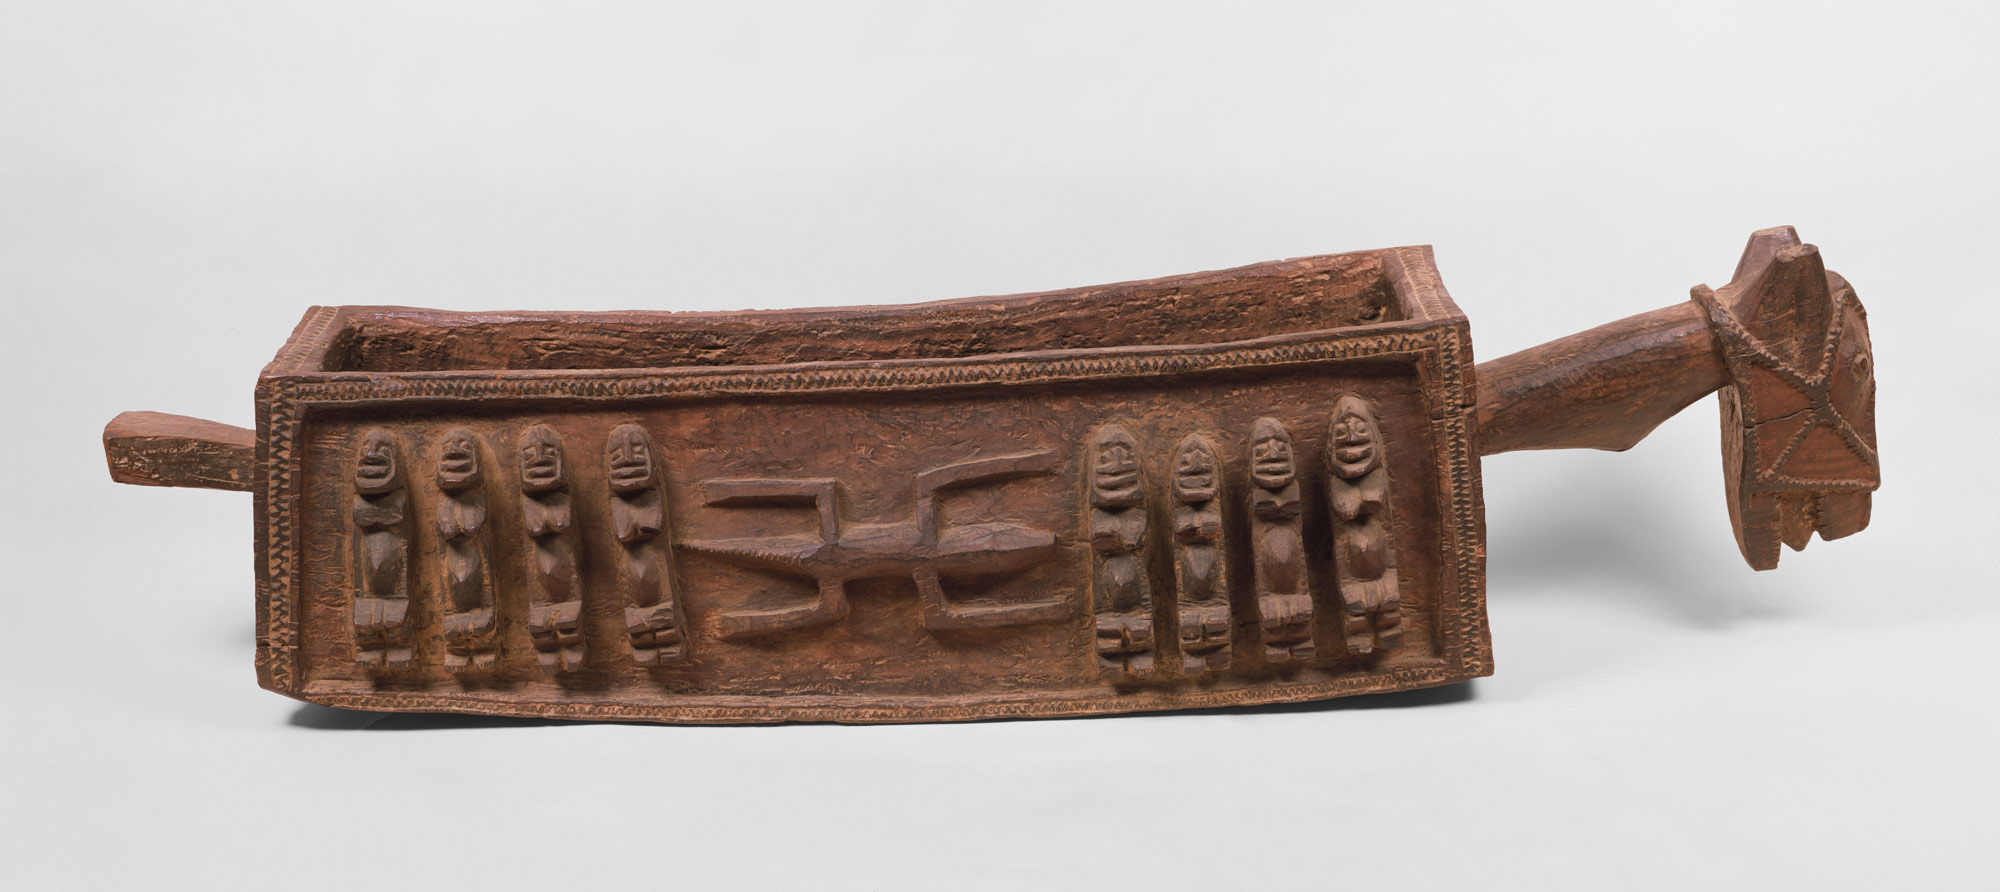 Ritual Vessel: Horse with Figures (Aduno Koro)